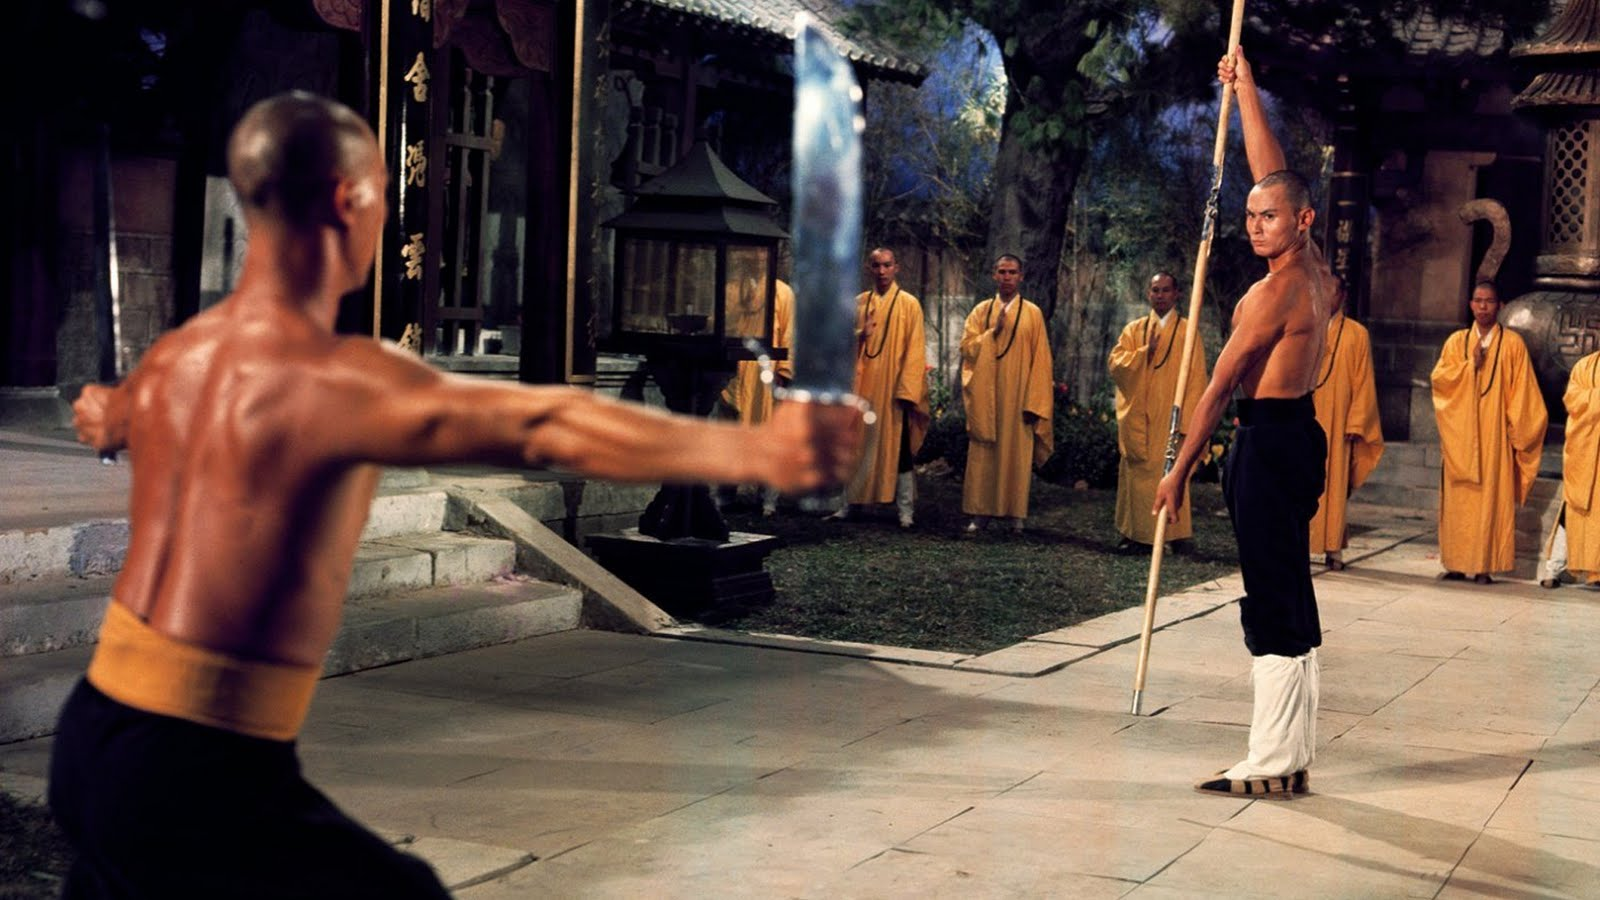 36th_chamber_shaolin_screen.jpg